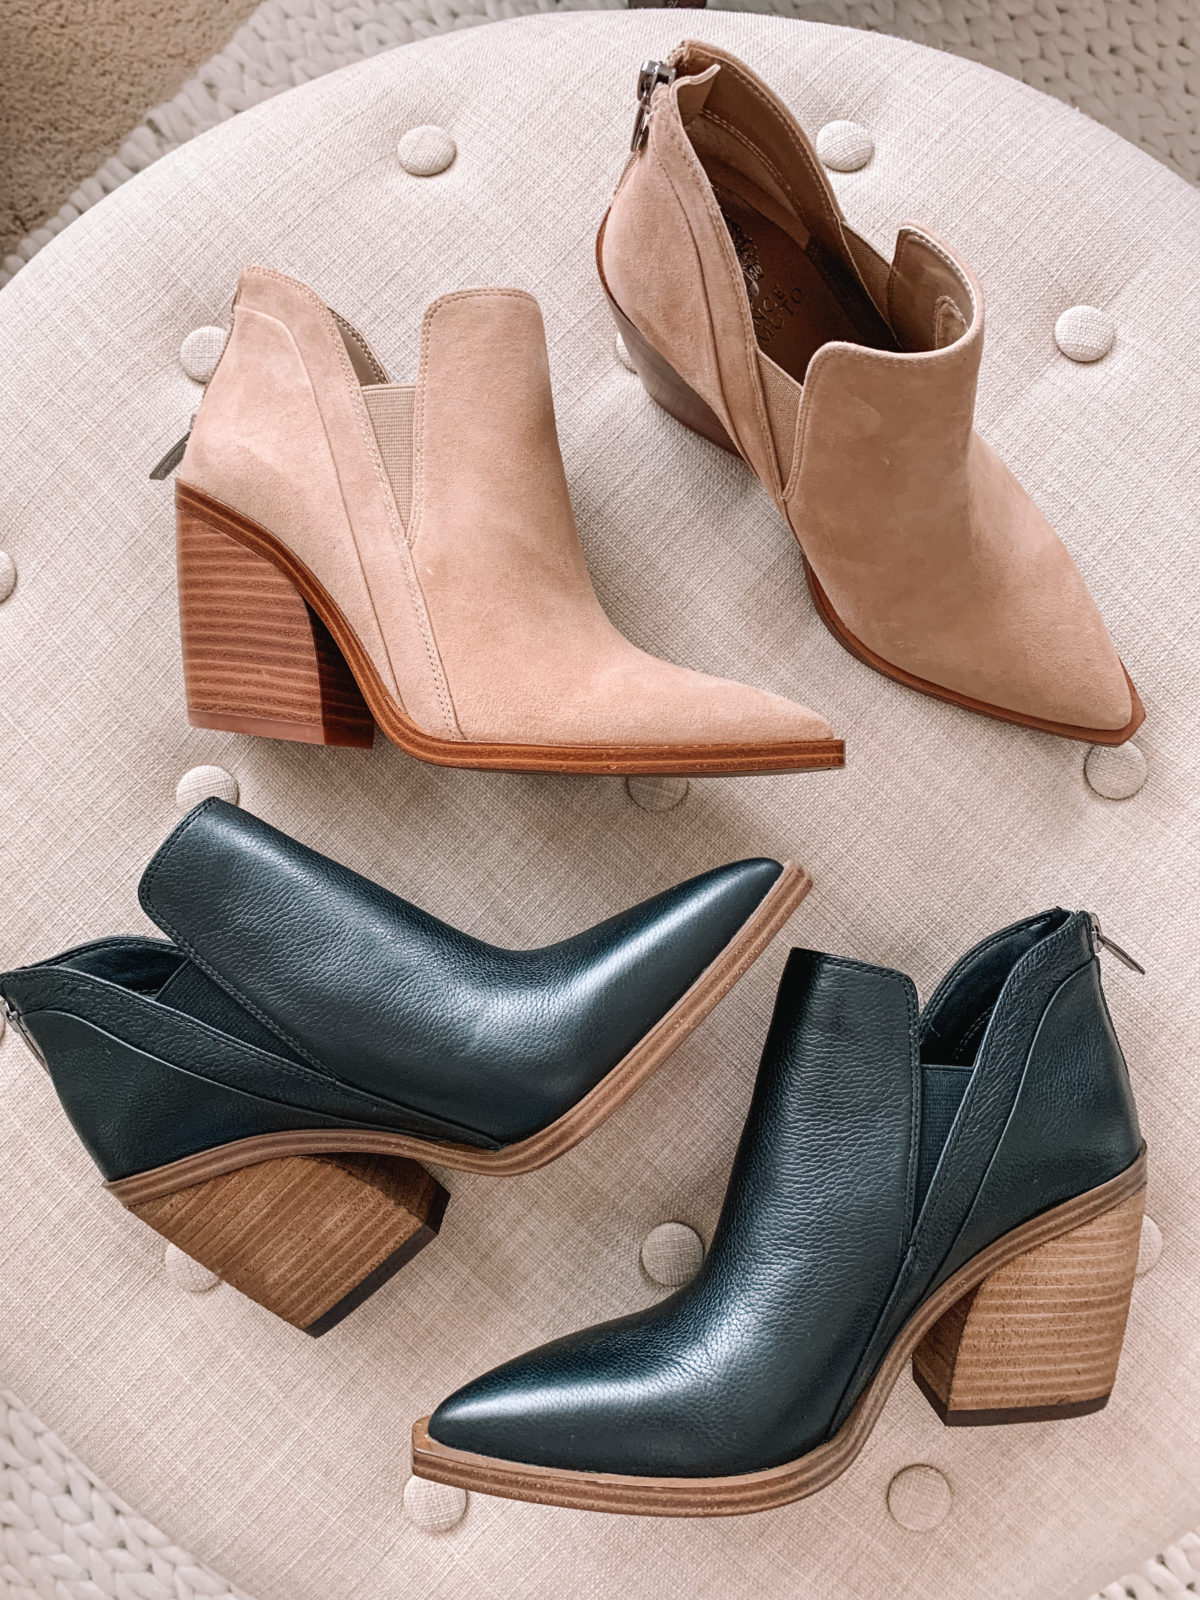 Nordstrom Sale Fashion Finds, Booties